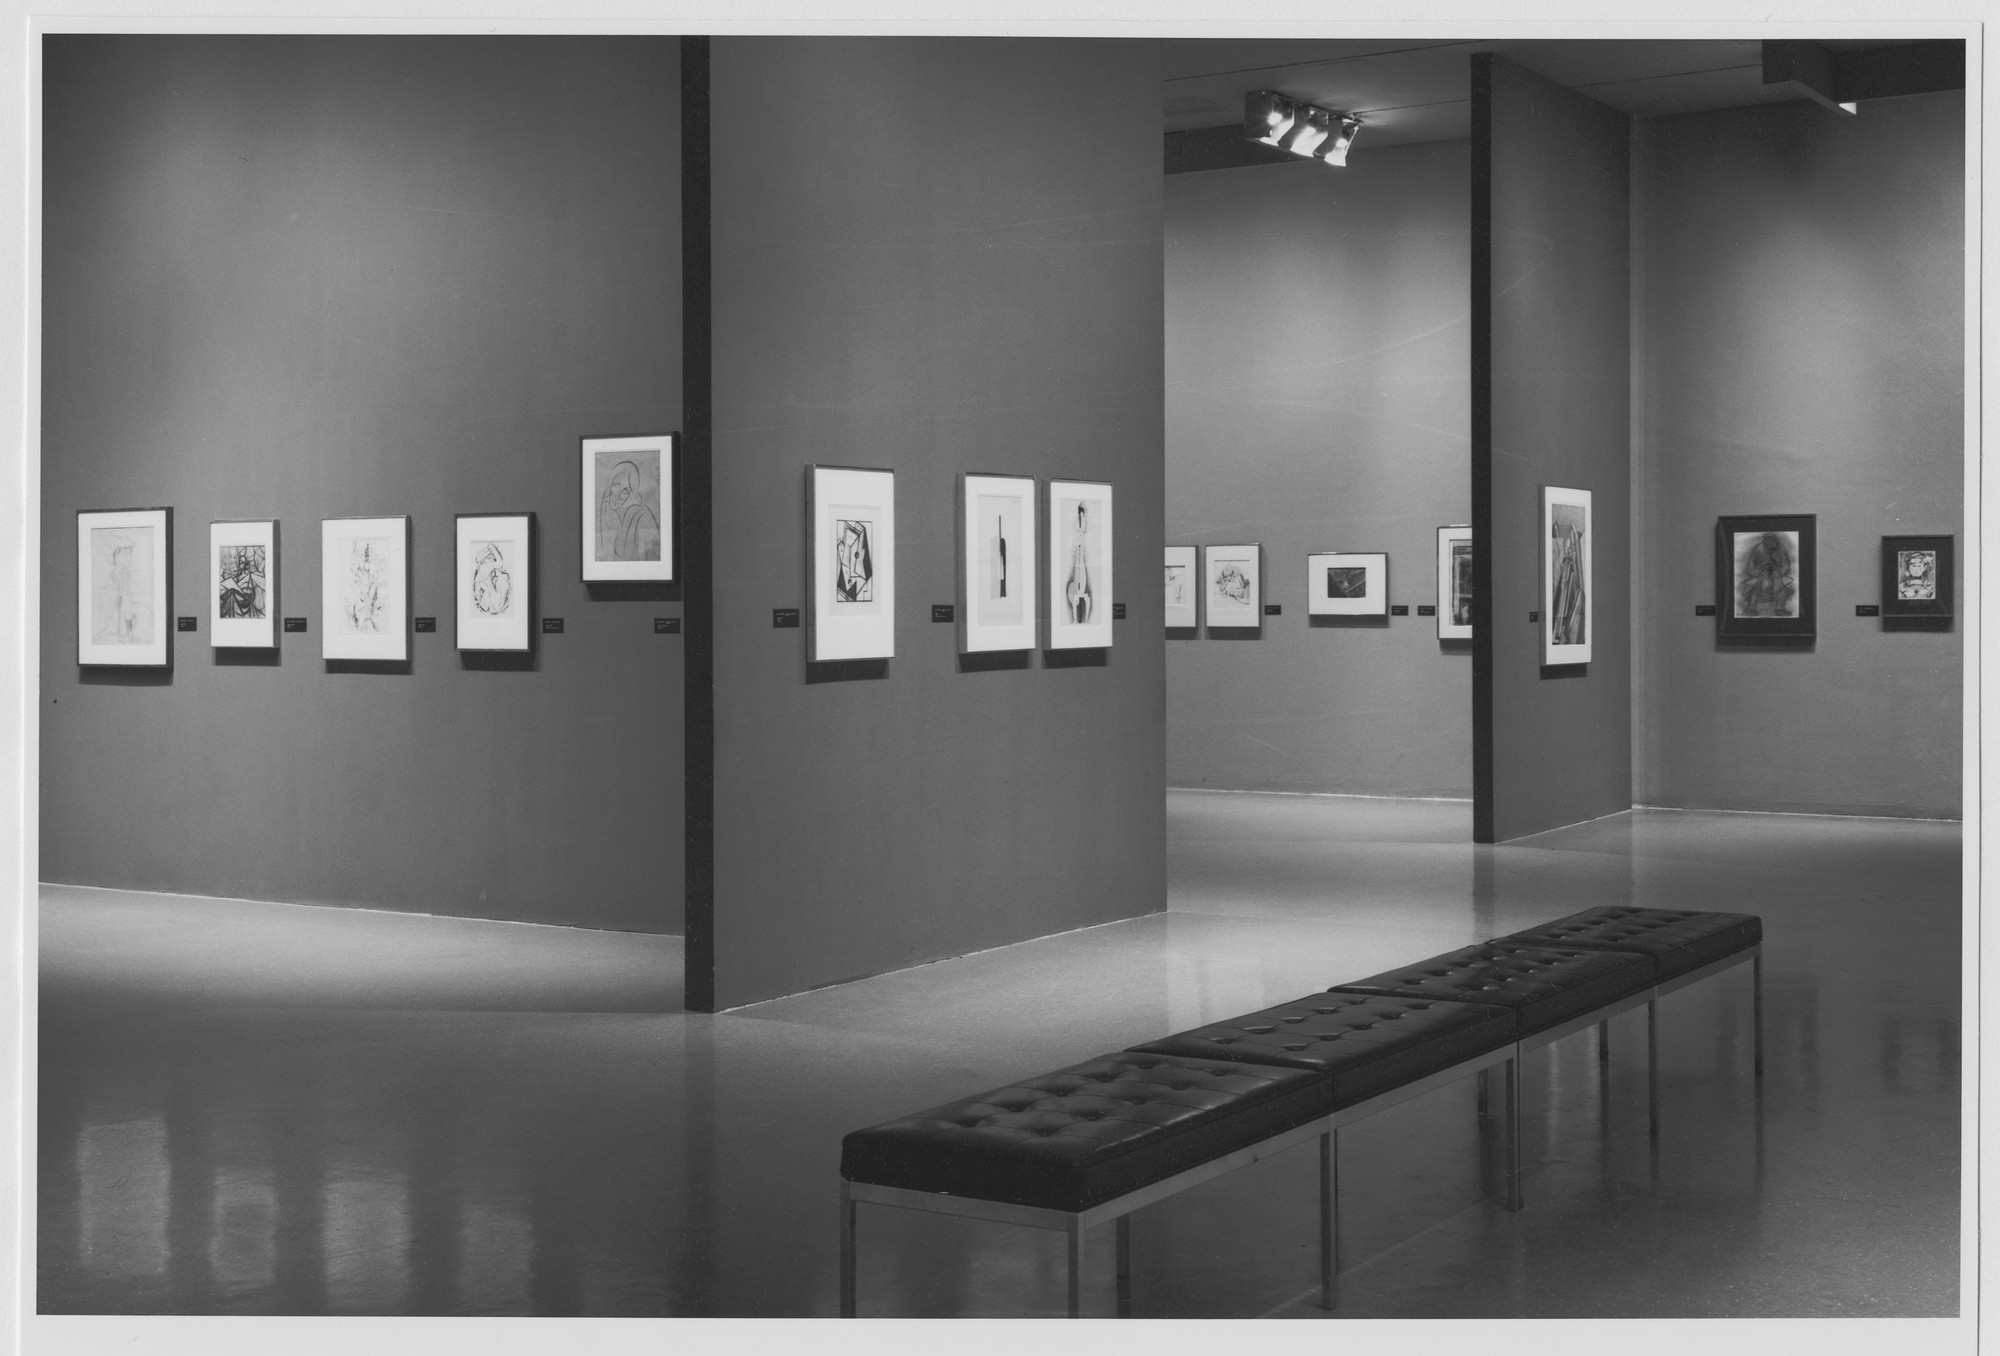 "Installation view of the exhibition, ""A Treasury of Modern Drawing:  The Joan and Lester Avnet Collection"" April 28, 1978–July 4, 1978. Photographic Archive. The Museum of Modern Art Archives, New York. IN1210.1. Photograph by Mali Olatunji."